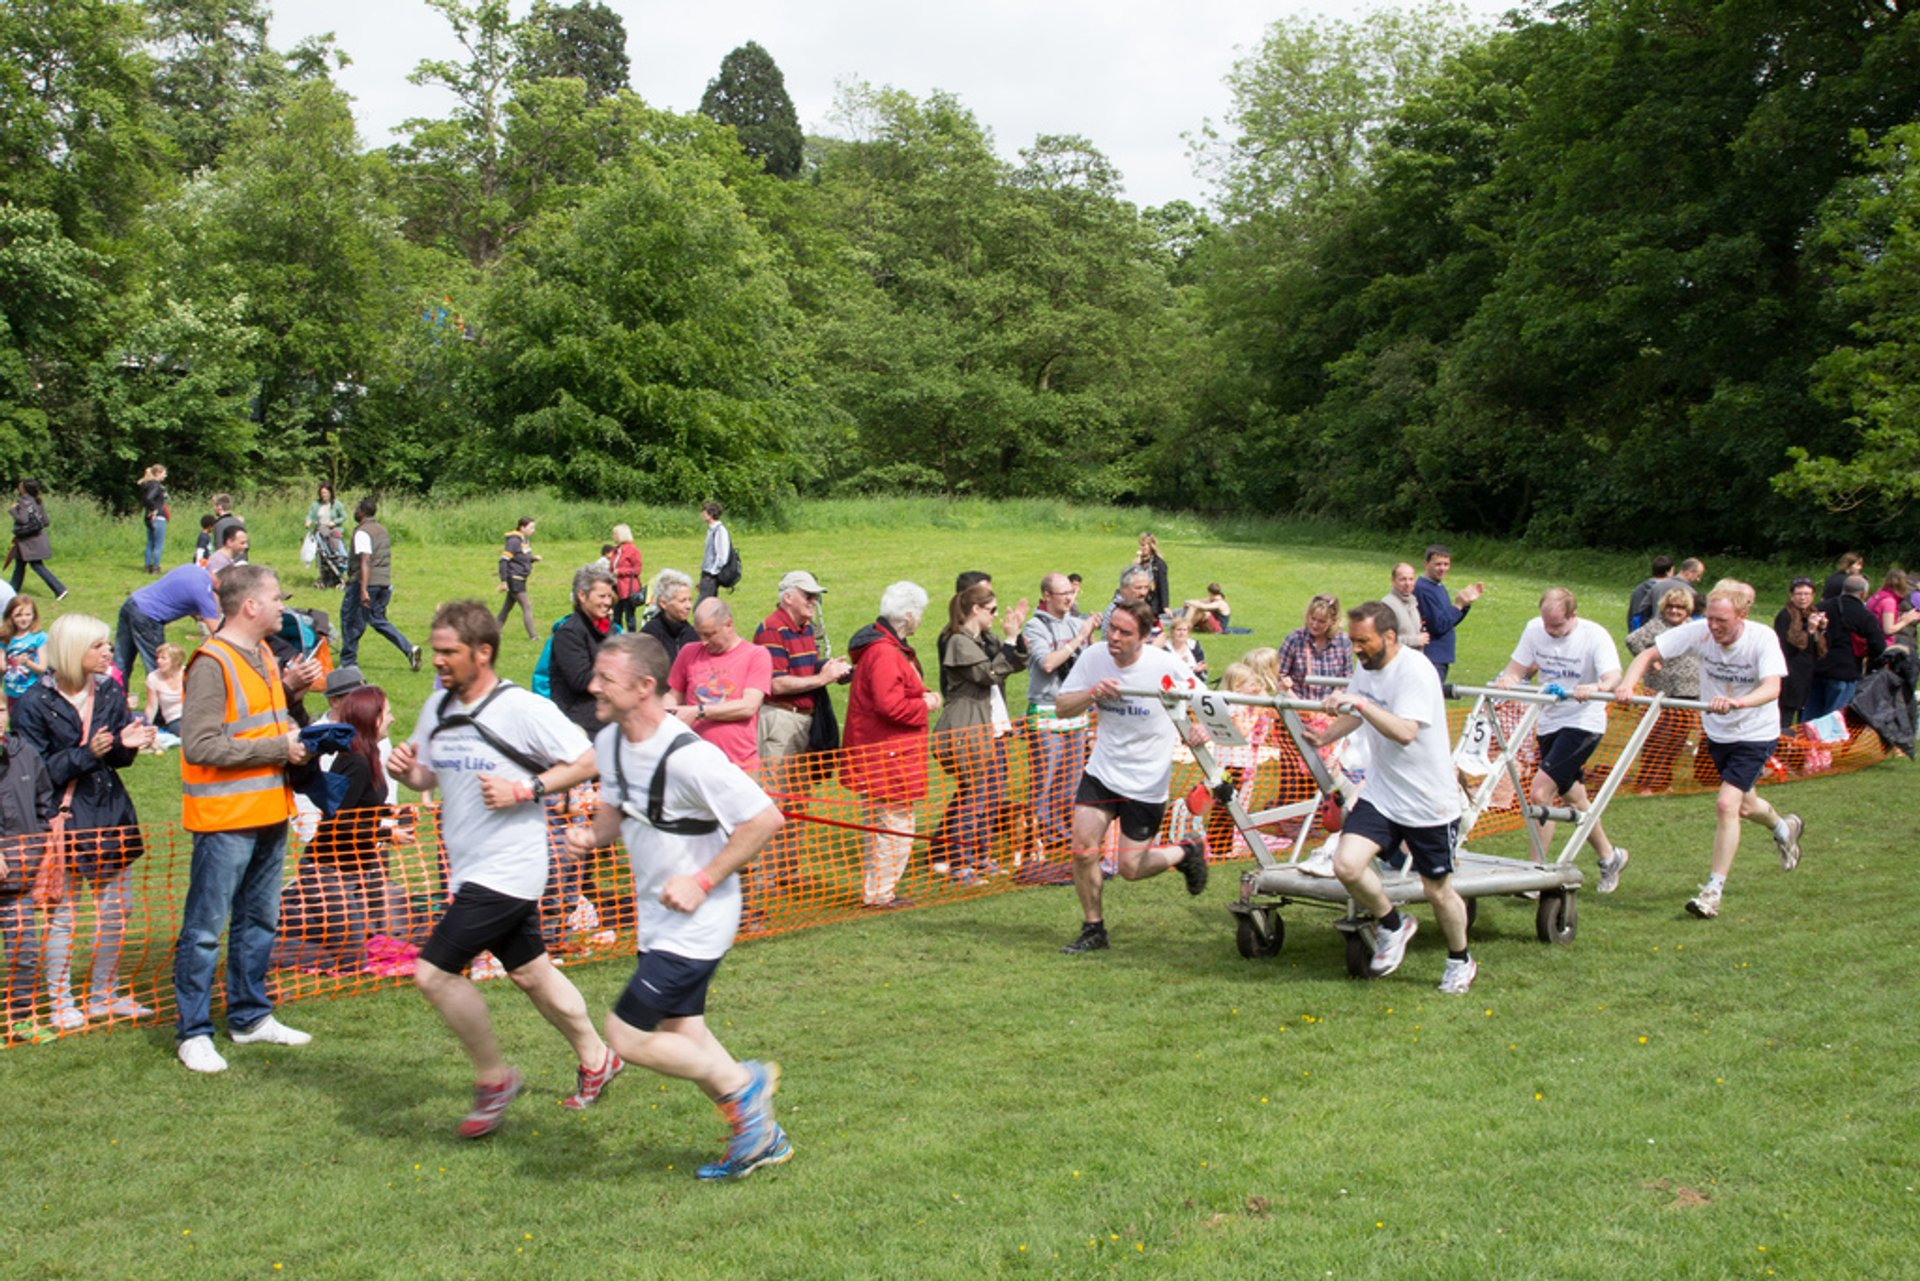 Best time to see Knaresborough Bed Race in England 2019